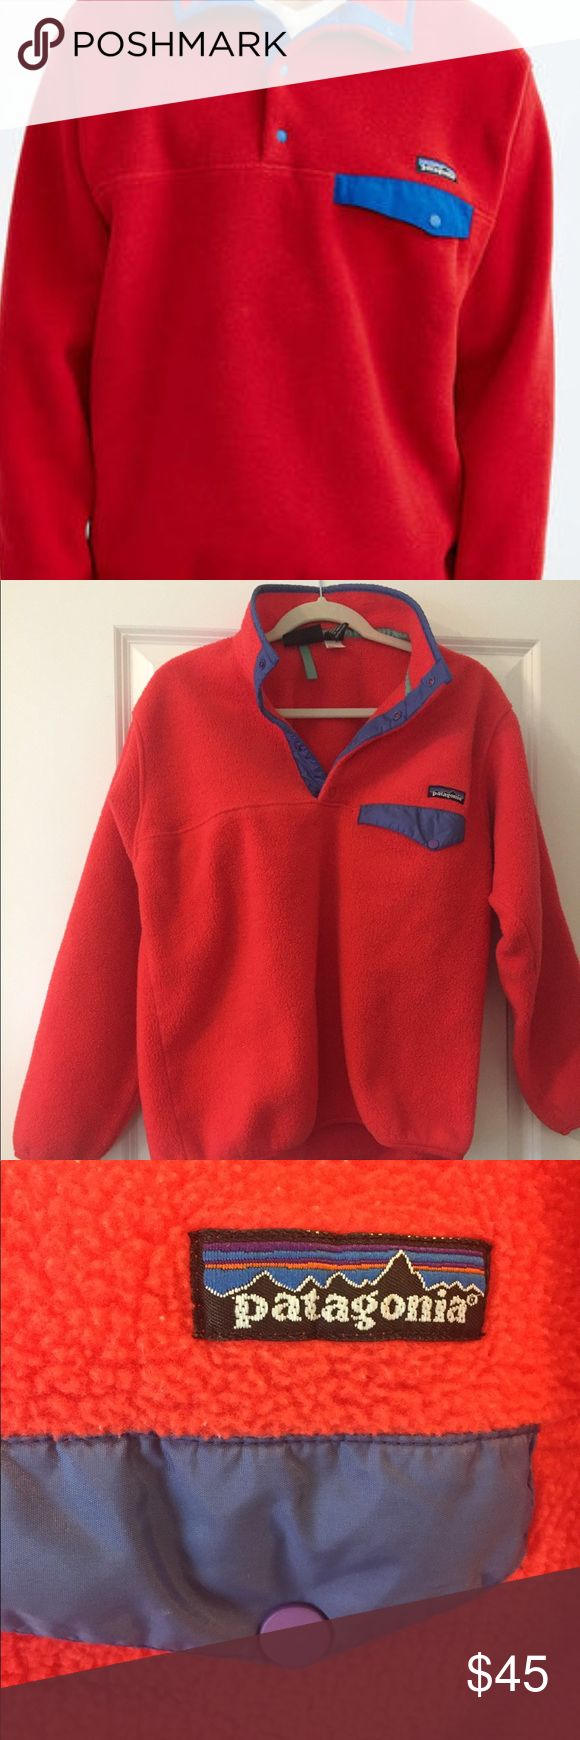 Patagonia Synchilla Fleece Pull-over Patagonia Synchilla Fleece Pull-Over. Red and purple. Some signs of wear on the bottom part of the fleece. The first photo is to only show the item. Patagonia Jackets & Coats